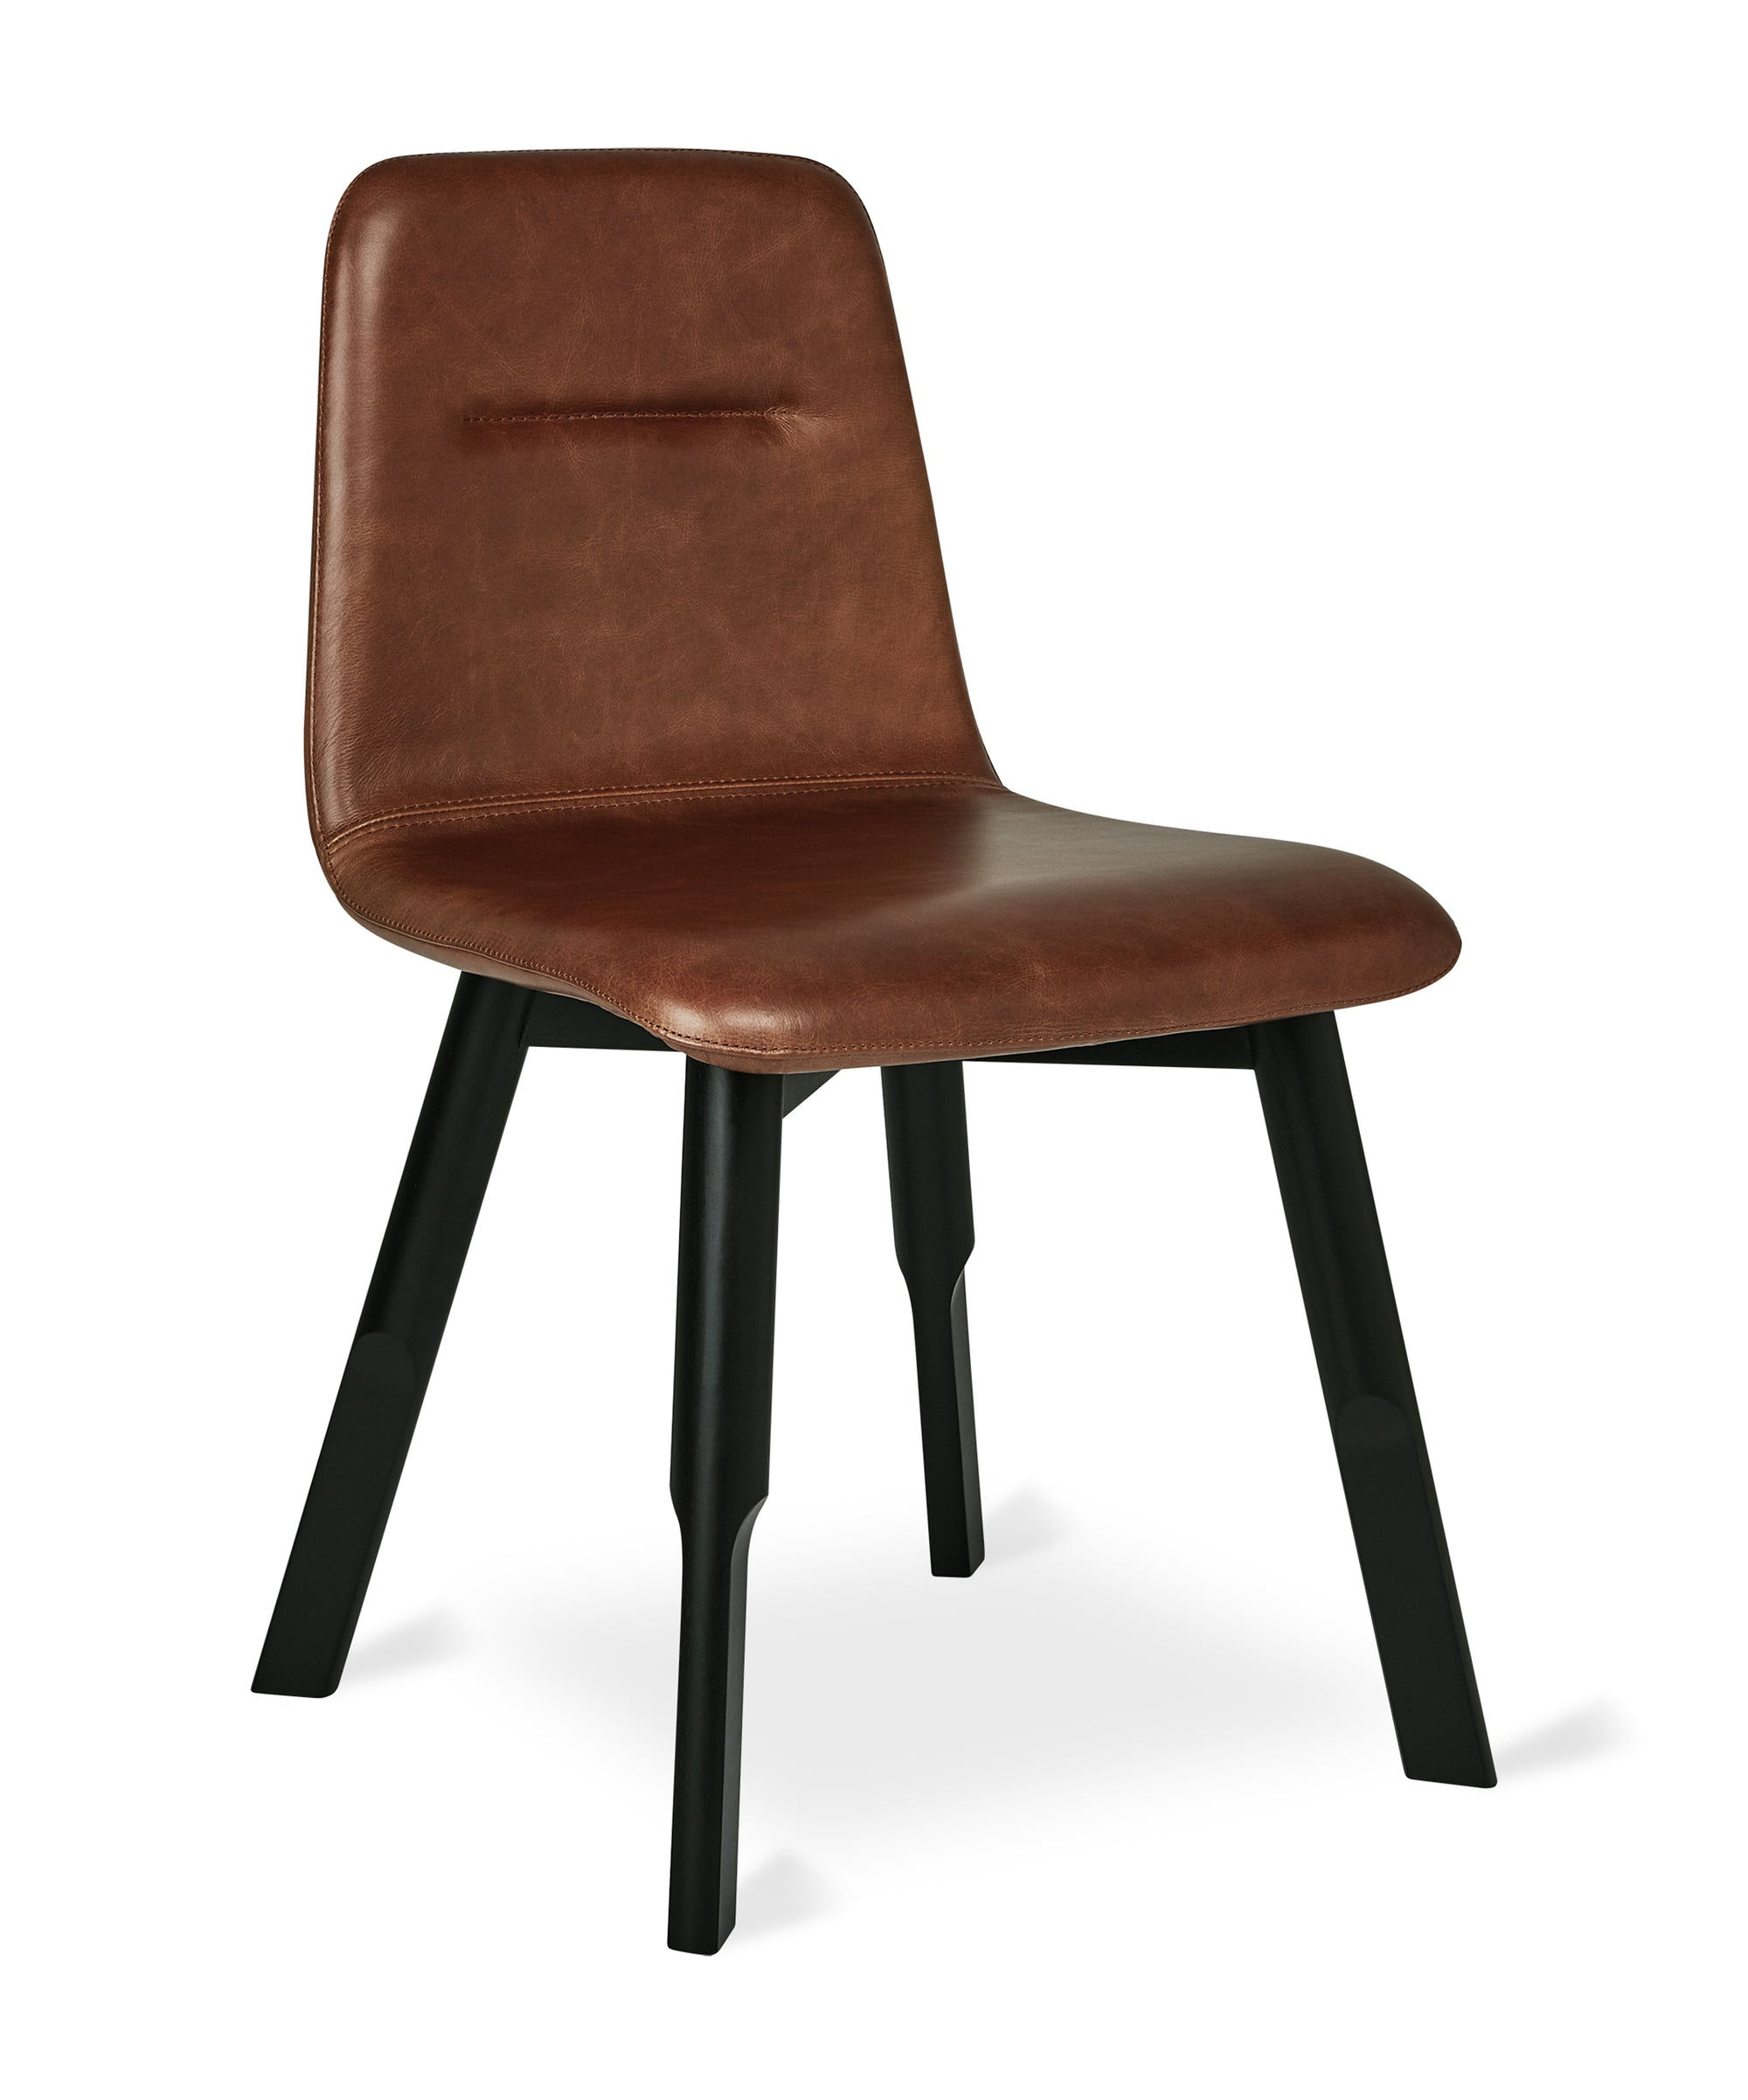 Gus* Modern Bracket Chair - Rug & Weave